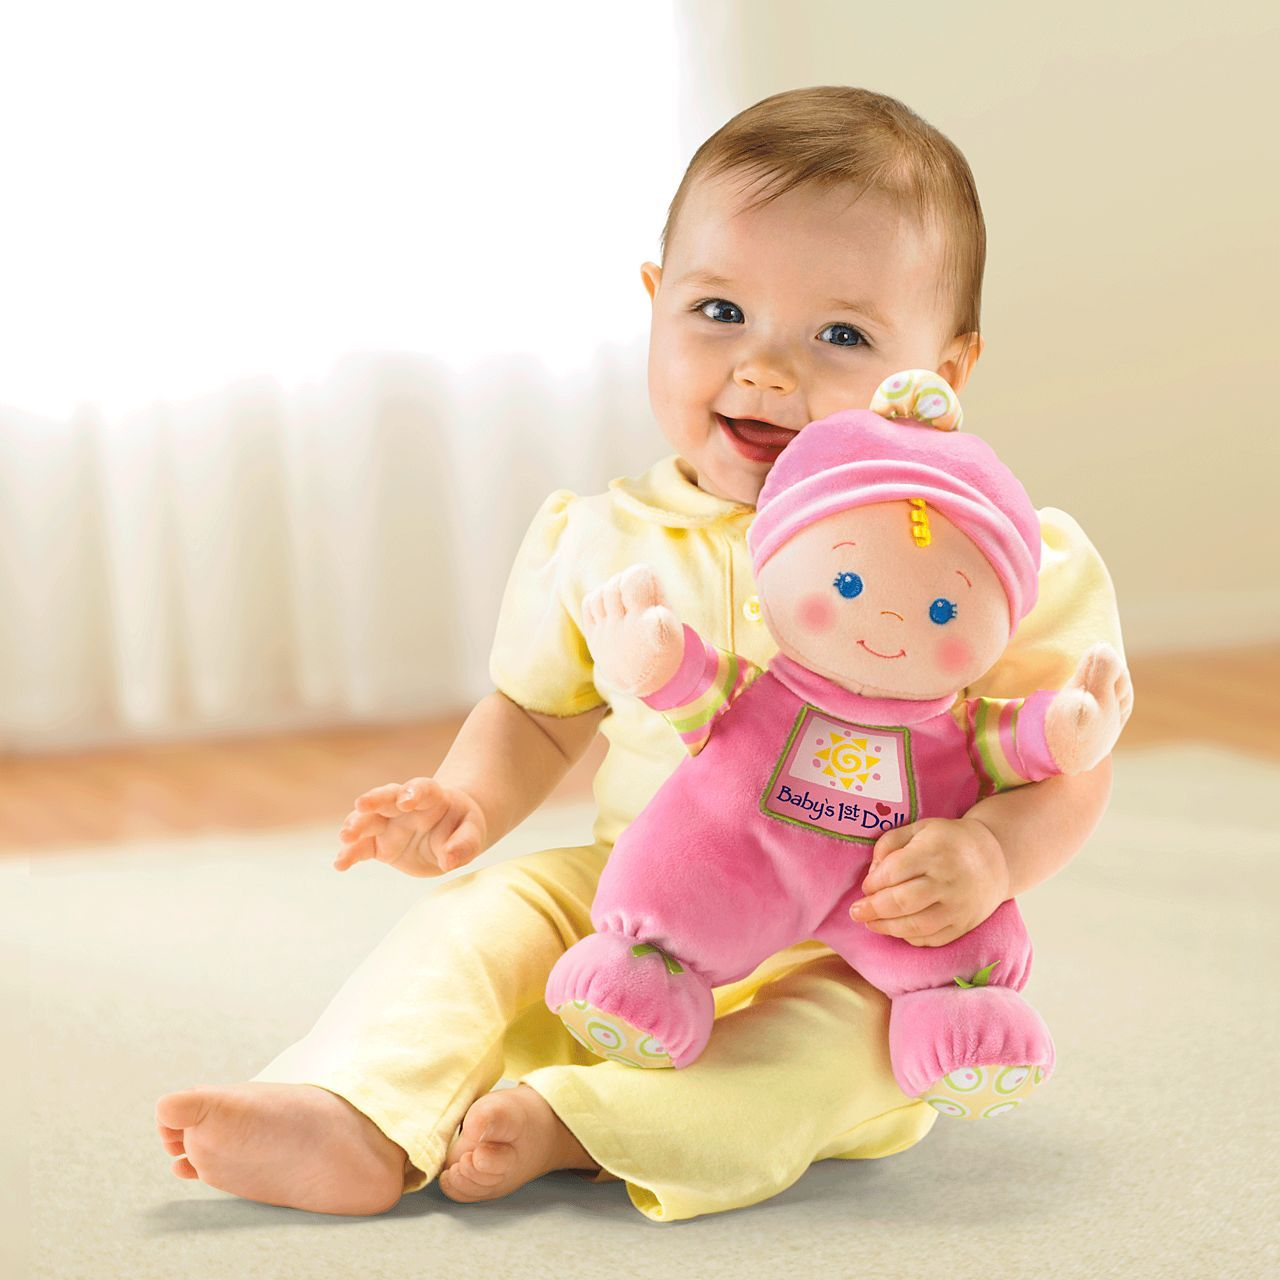 Image For Baby S 1st Doll From Mattel With Images Baby S First